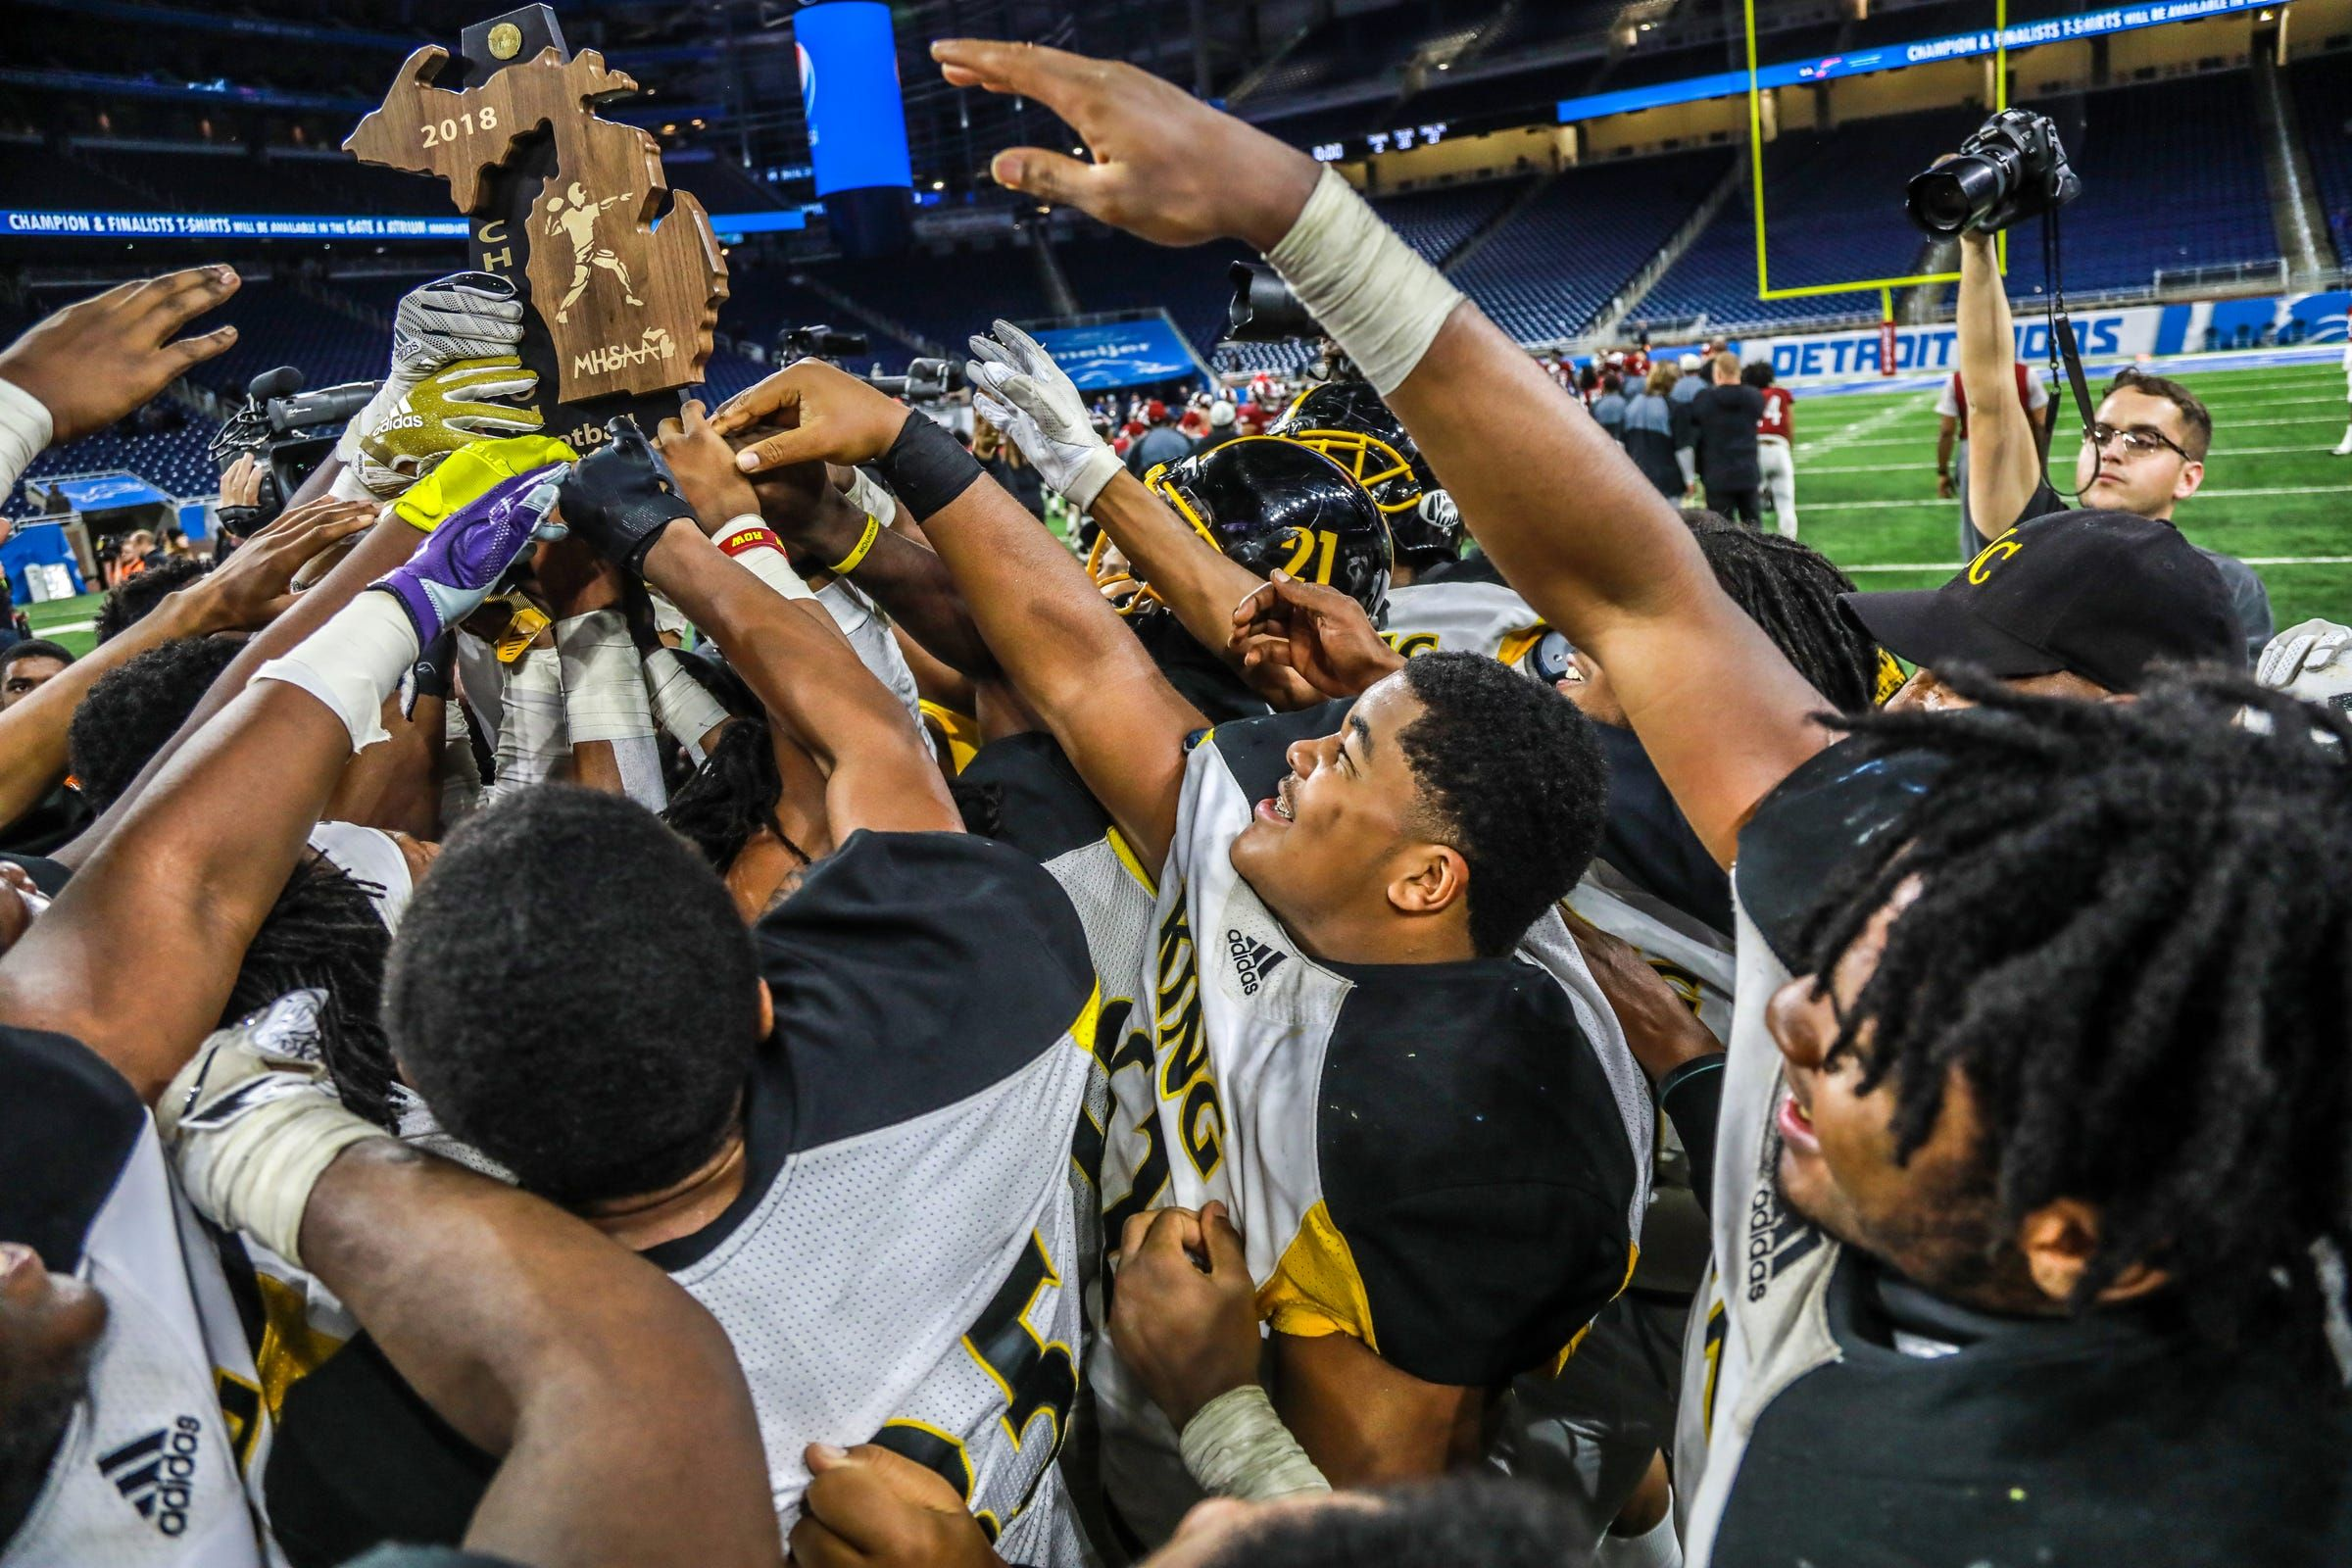 Mhsaa S New Transfer Rule Doesn T Do Enough To Stop Cheaters High School Football Playoffs School Football High School Football